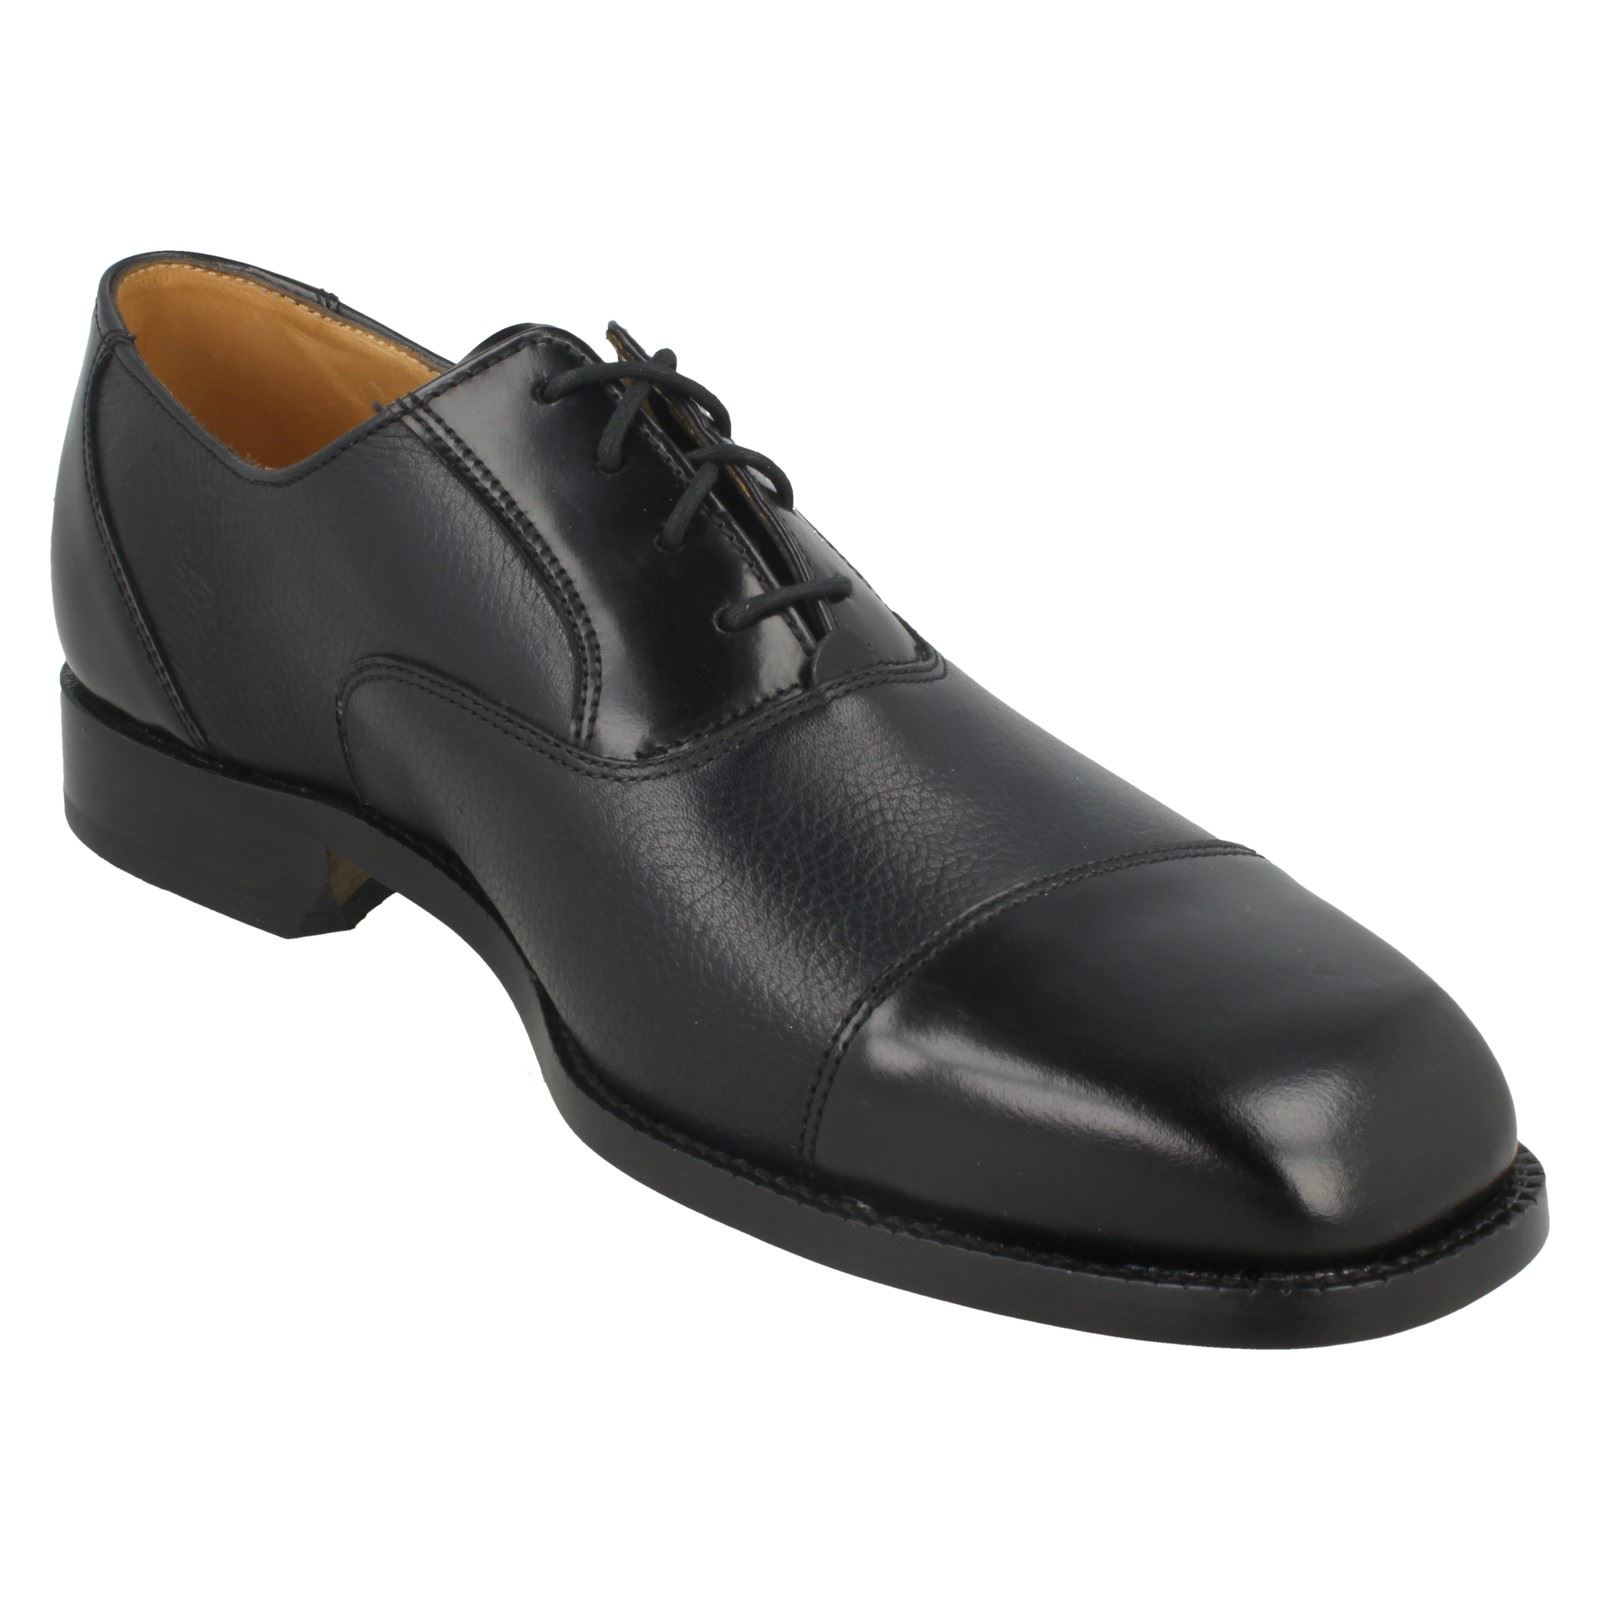 Herren Grenson Penrith Formal Schuhes Penrith Grenson 7841f3